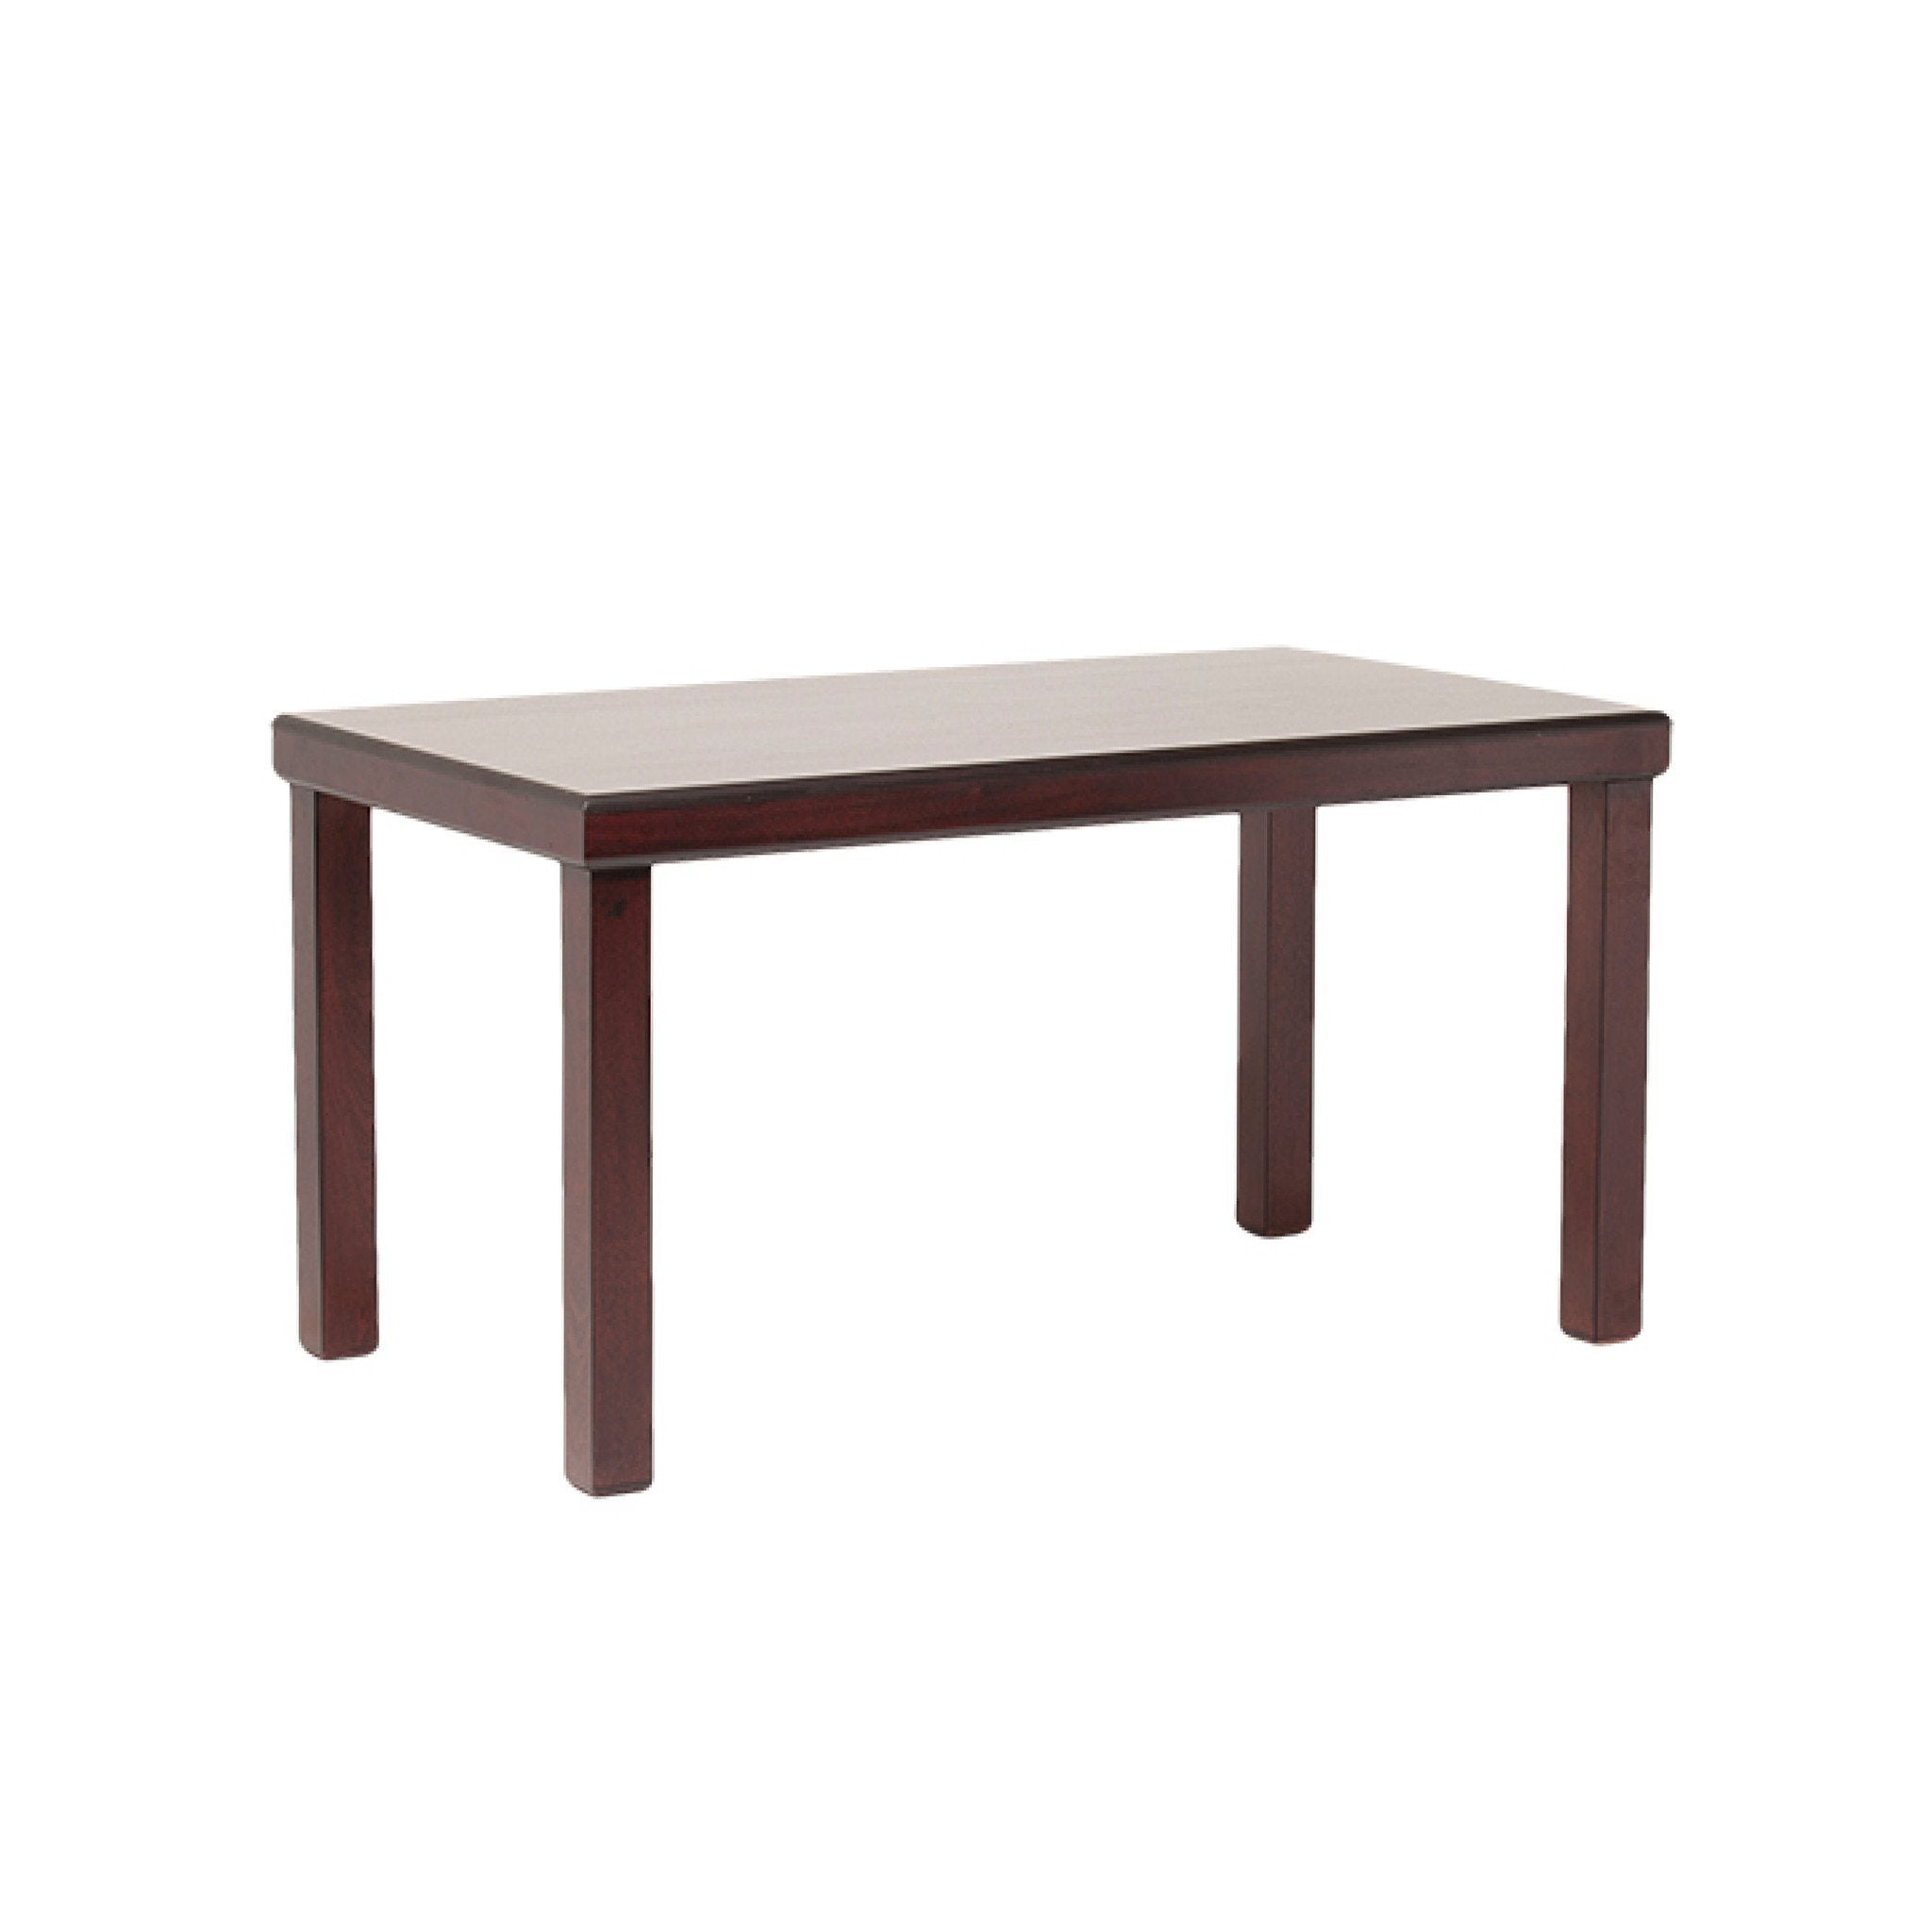 URBAN-DINING TABLE-900/900-DM